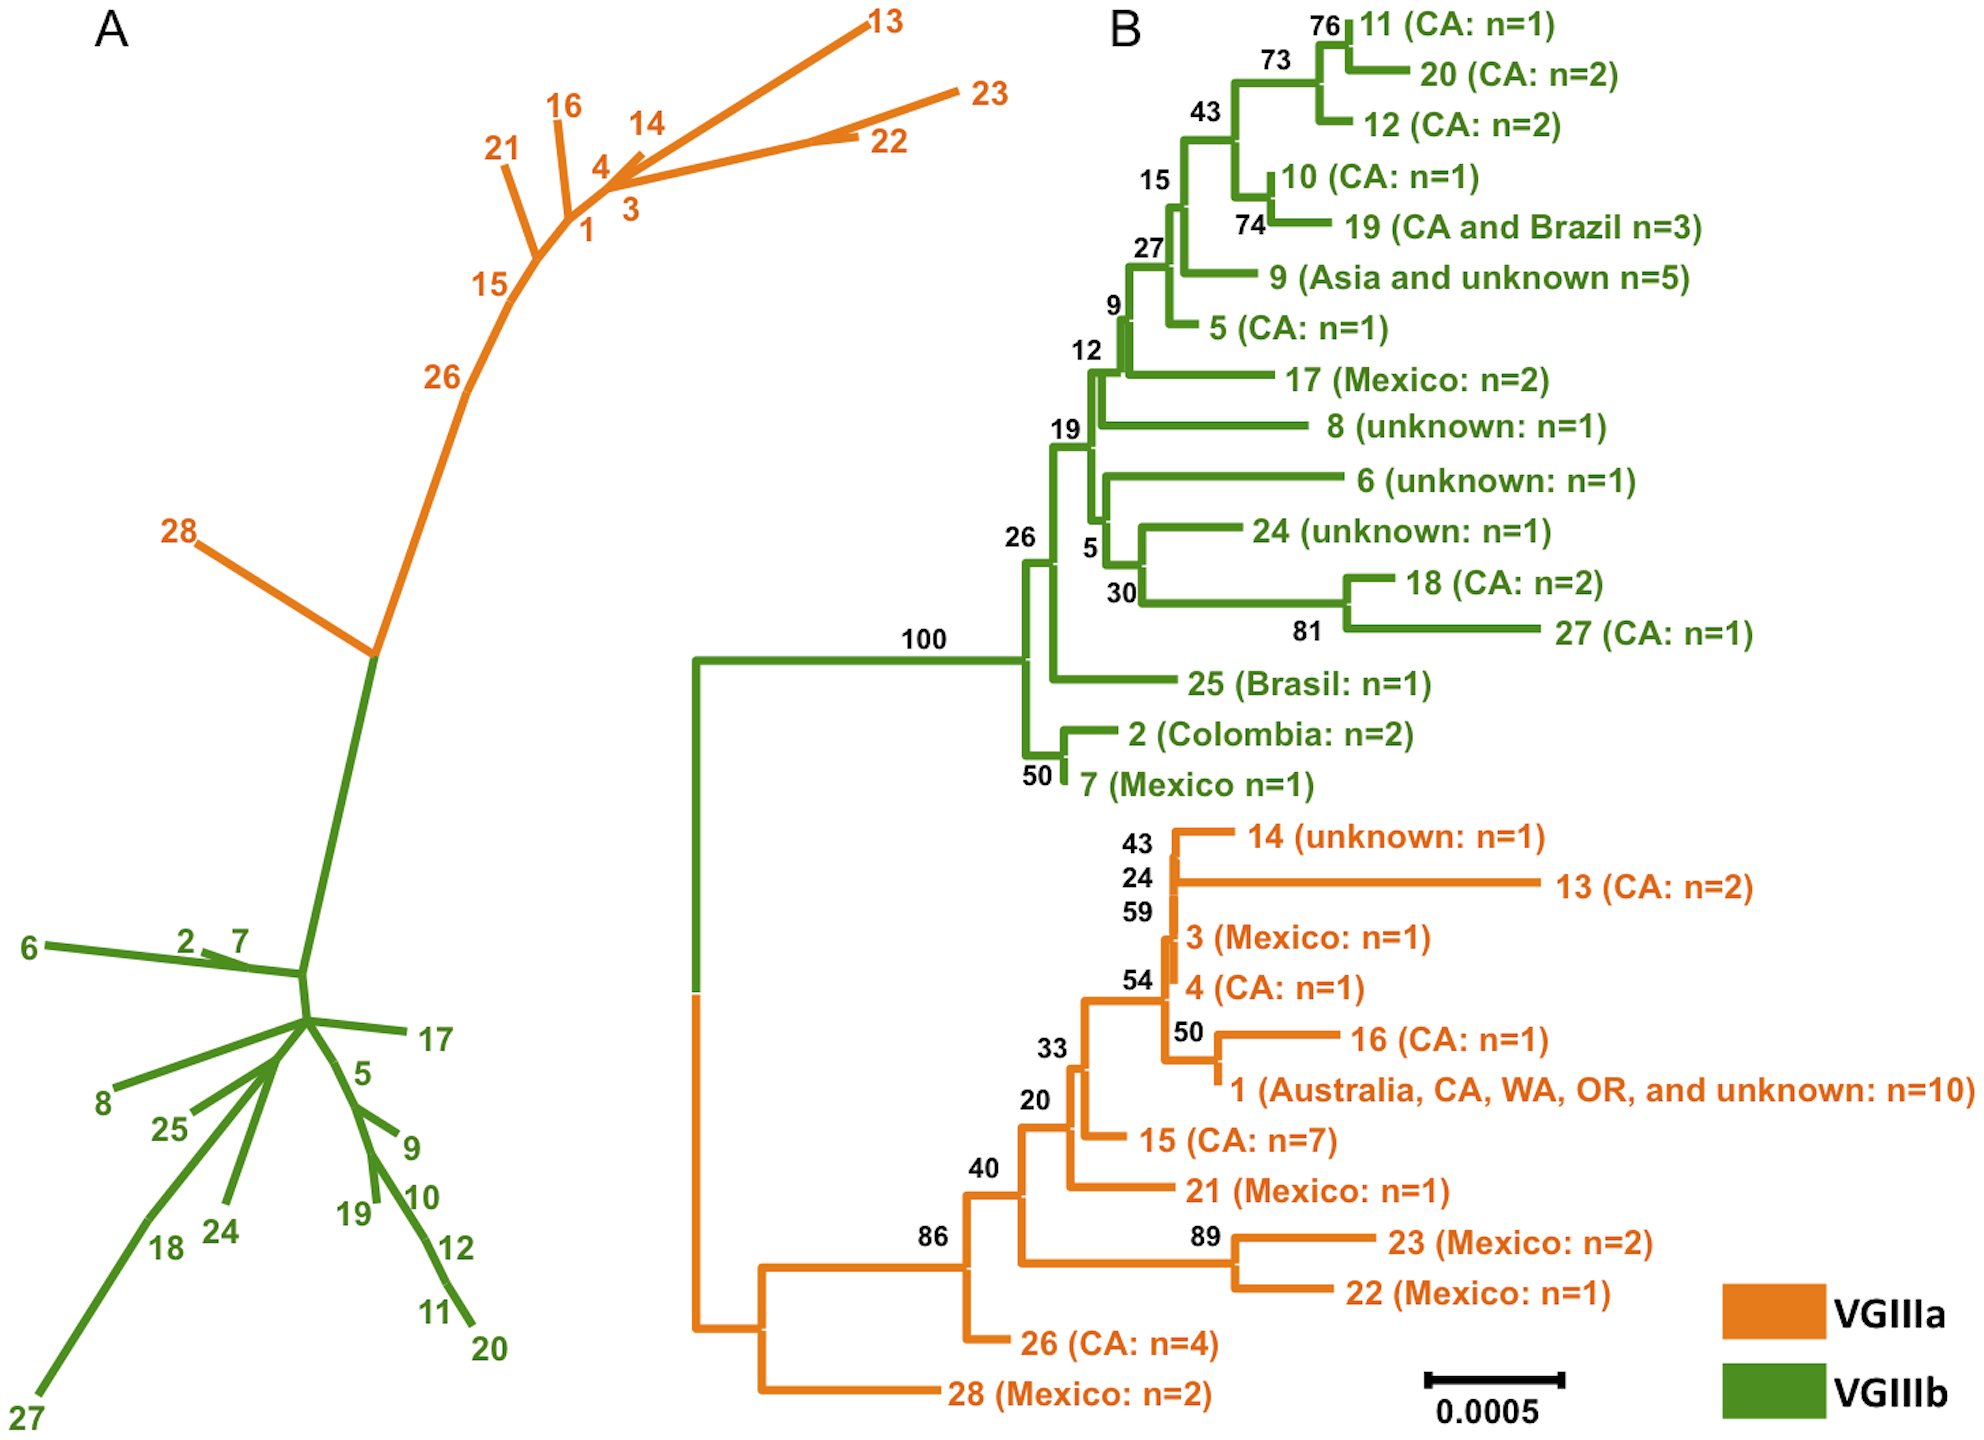 Clustering and phylogenetic analyses of global VGIII isolates reveals two well-supported lineages and one intermediate genotype.